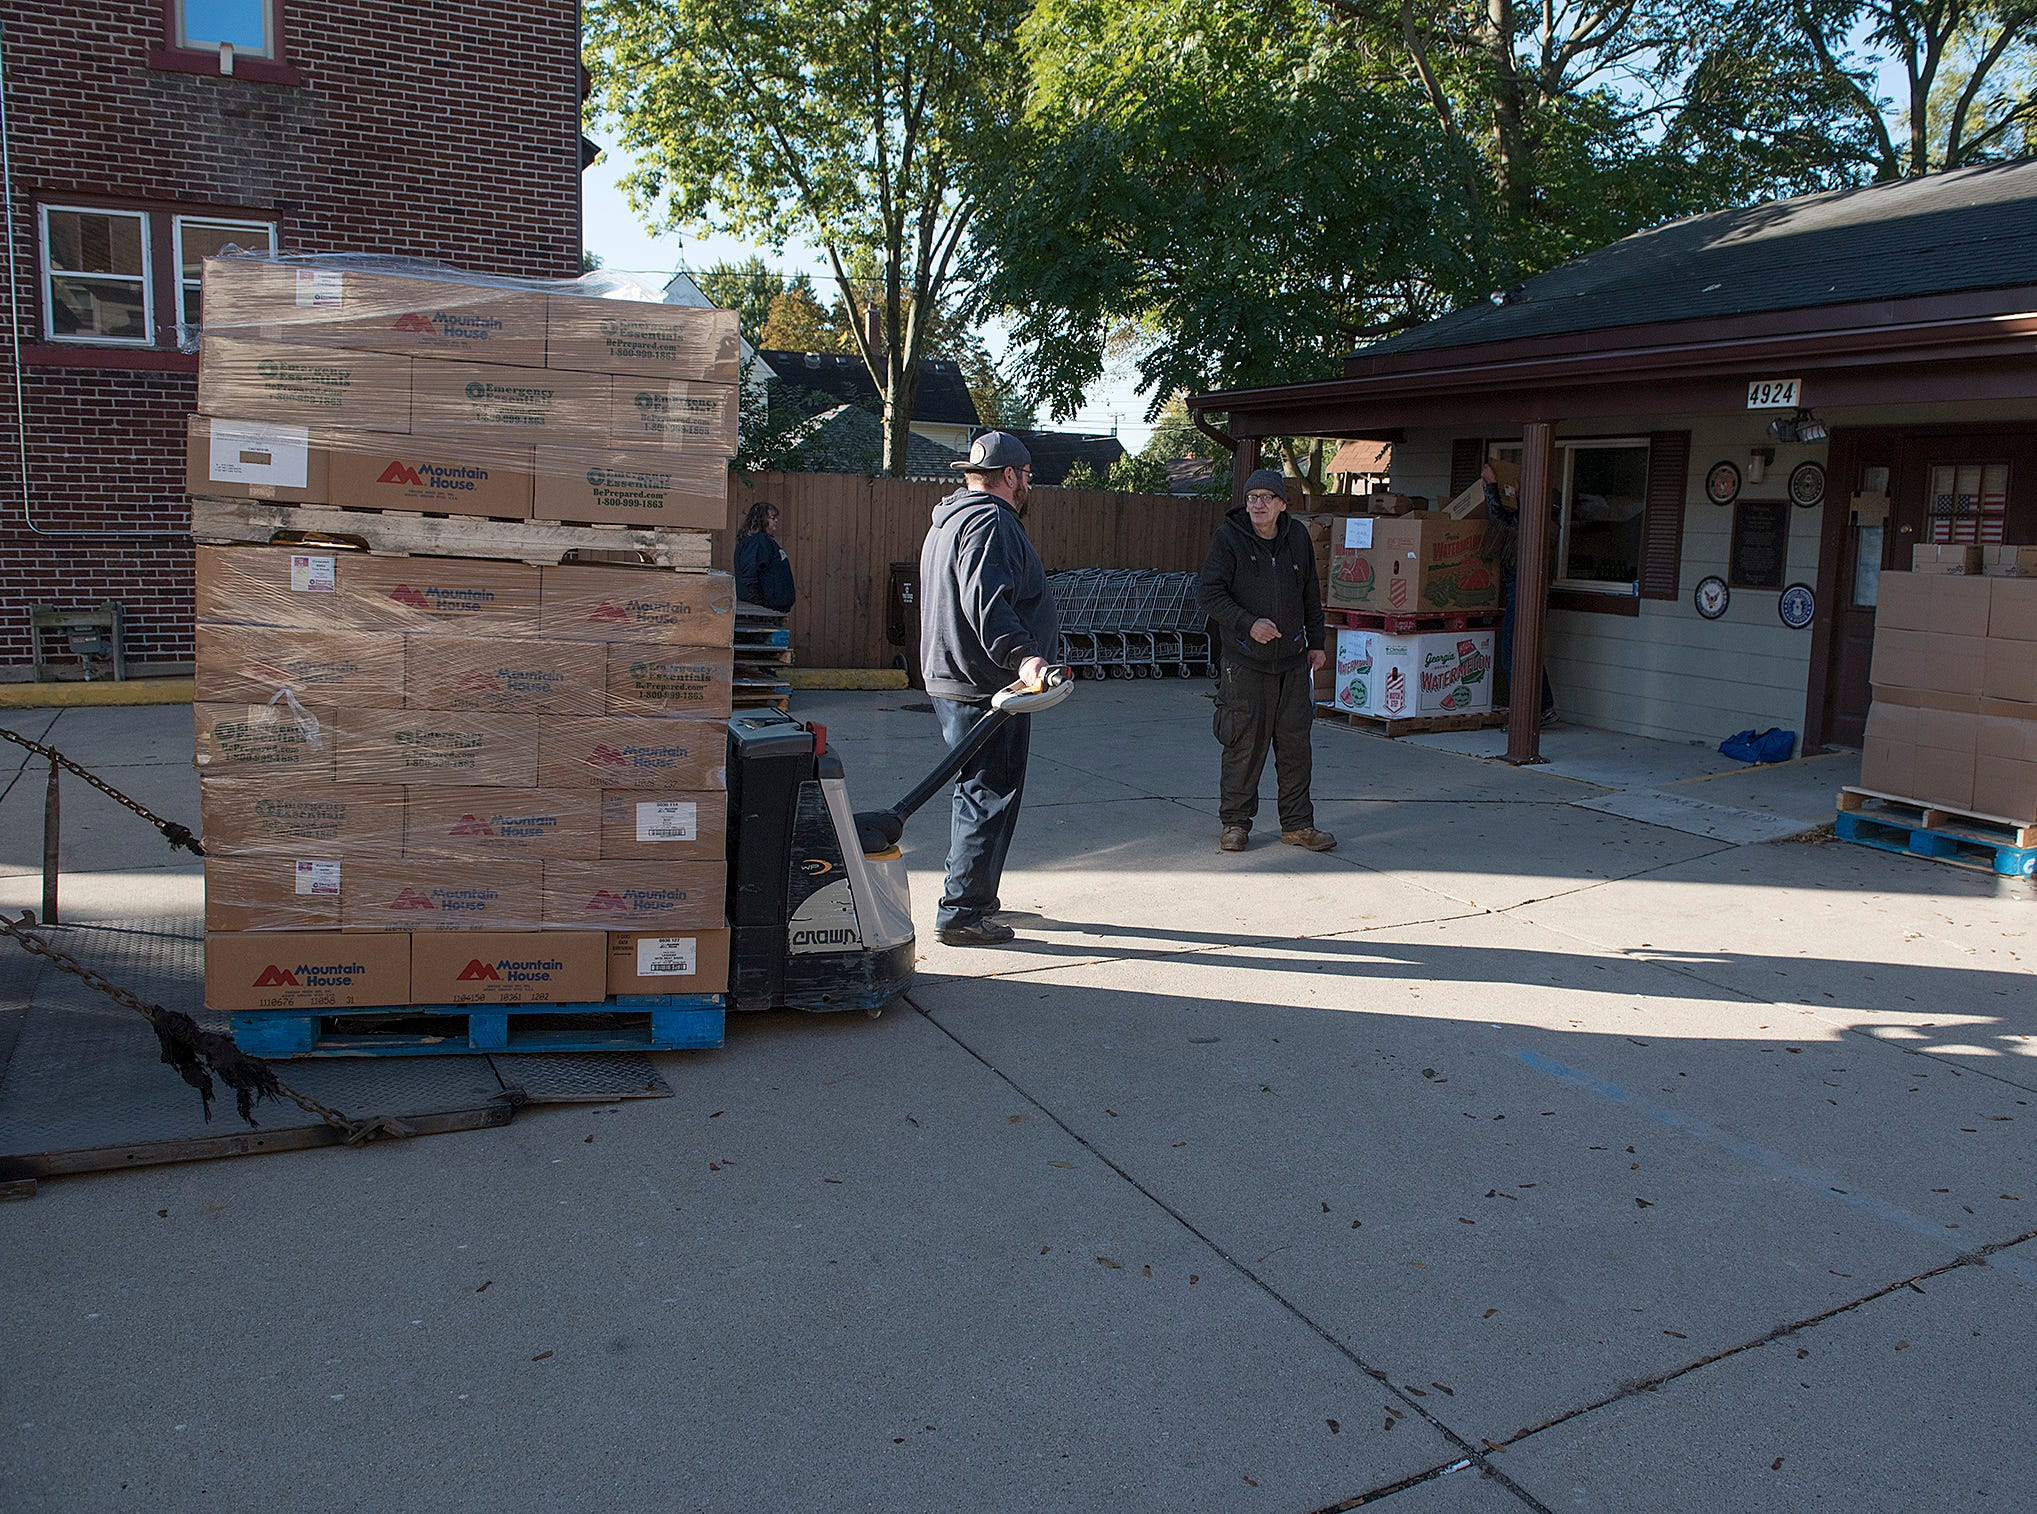 Early morning is the time that the truck from Gleaners arrives, with food for veterans.